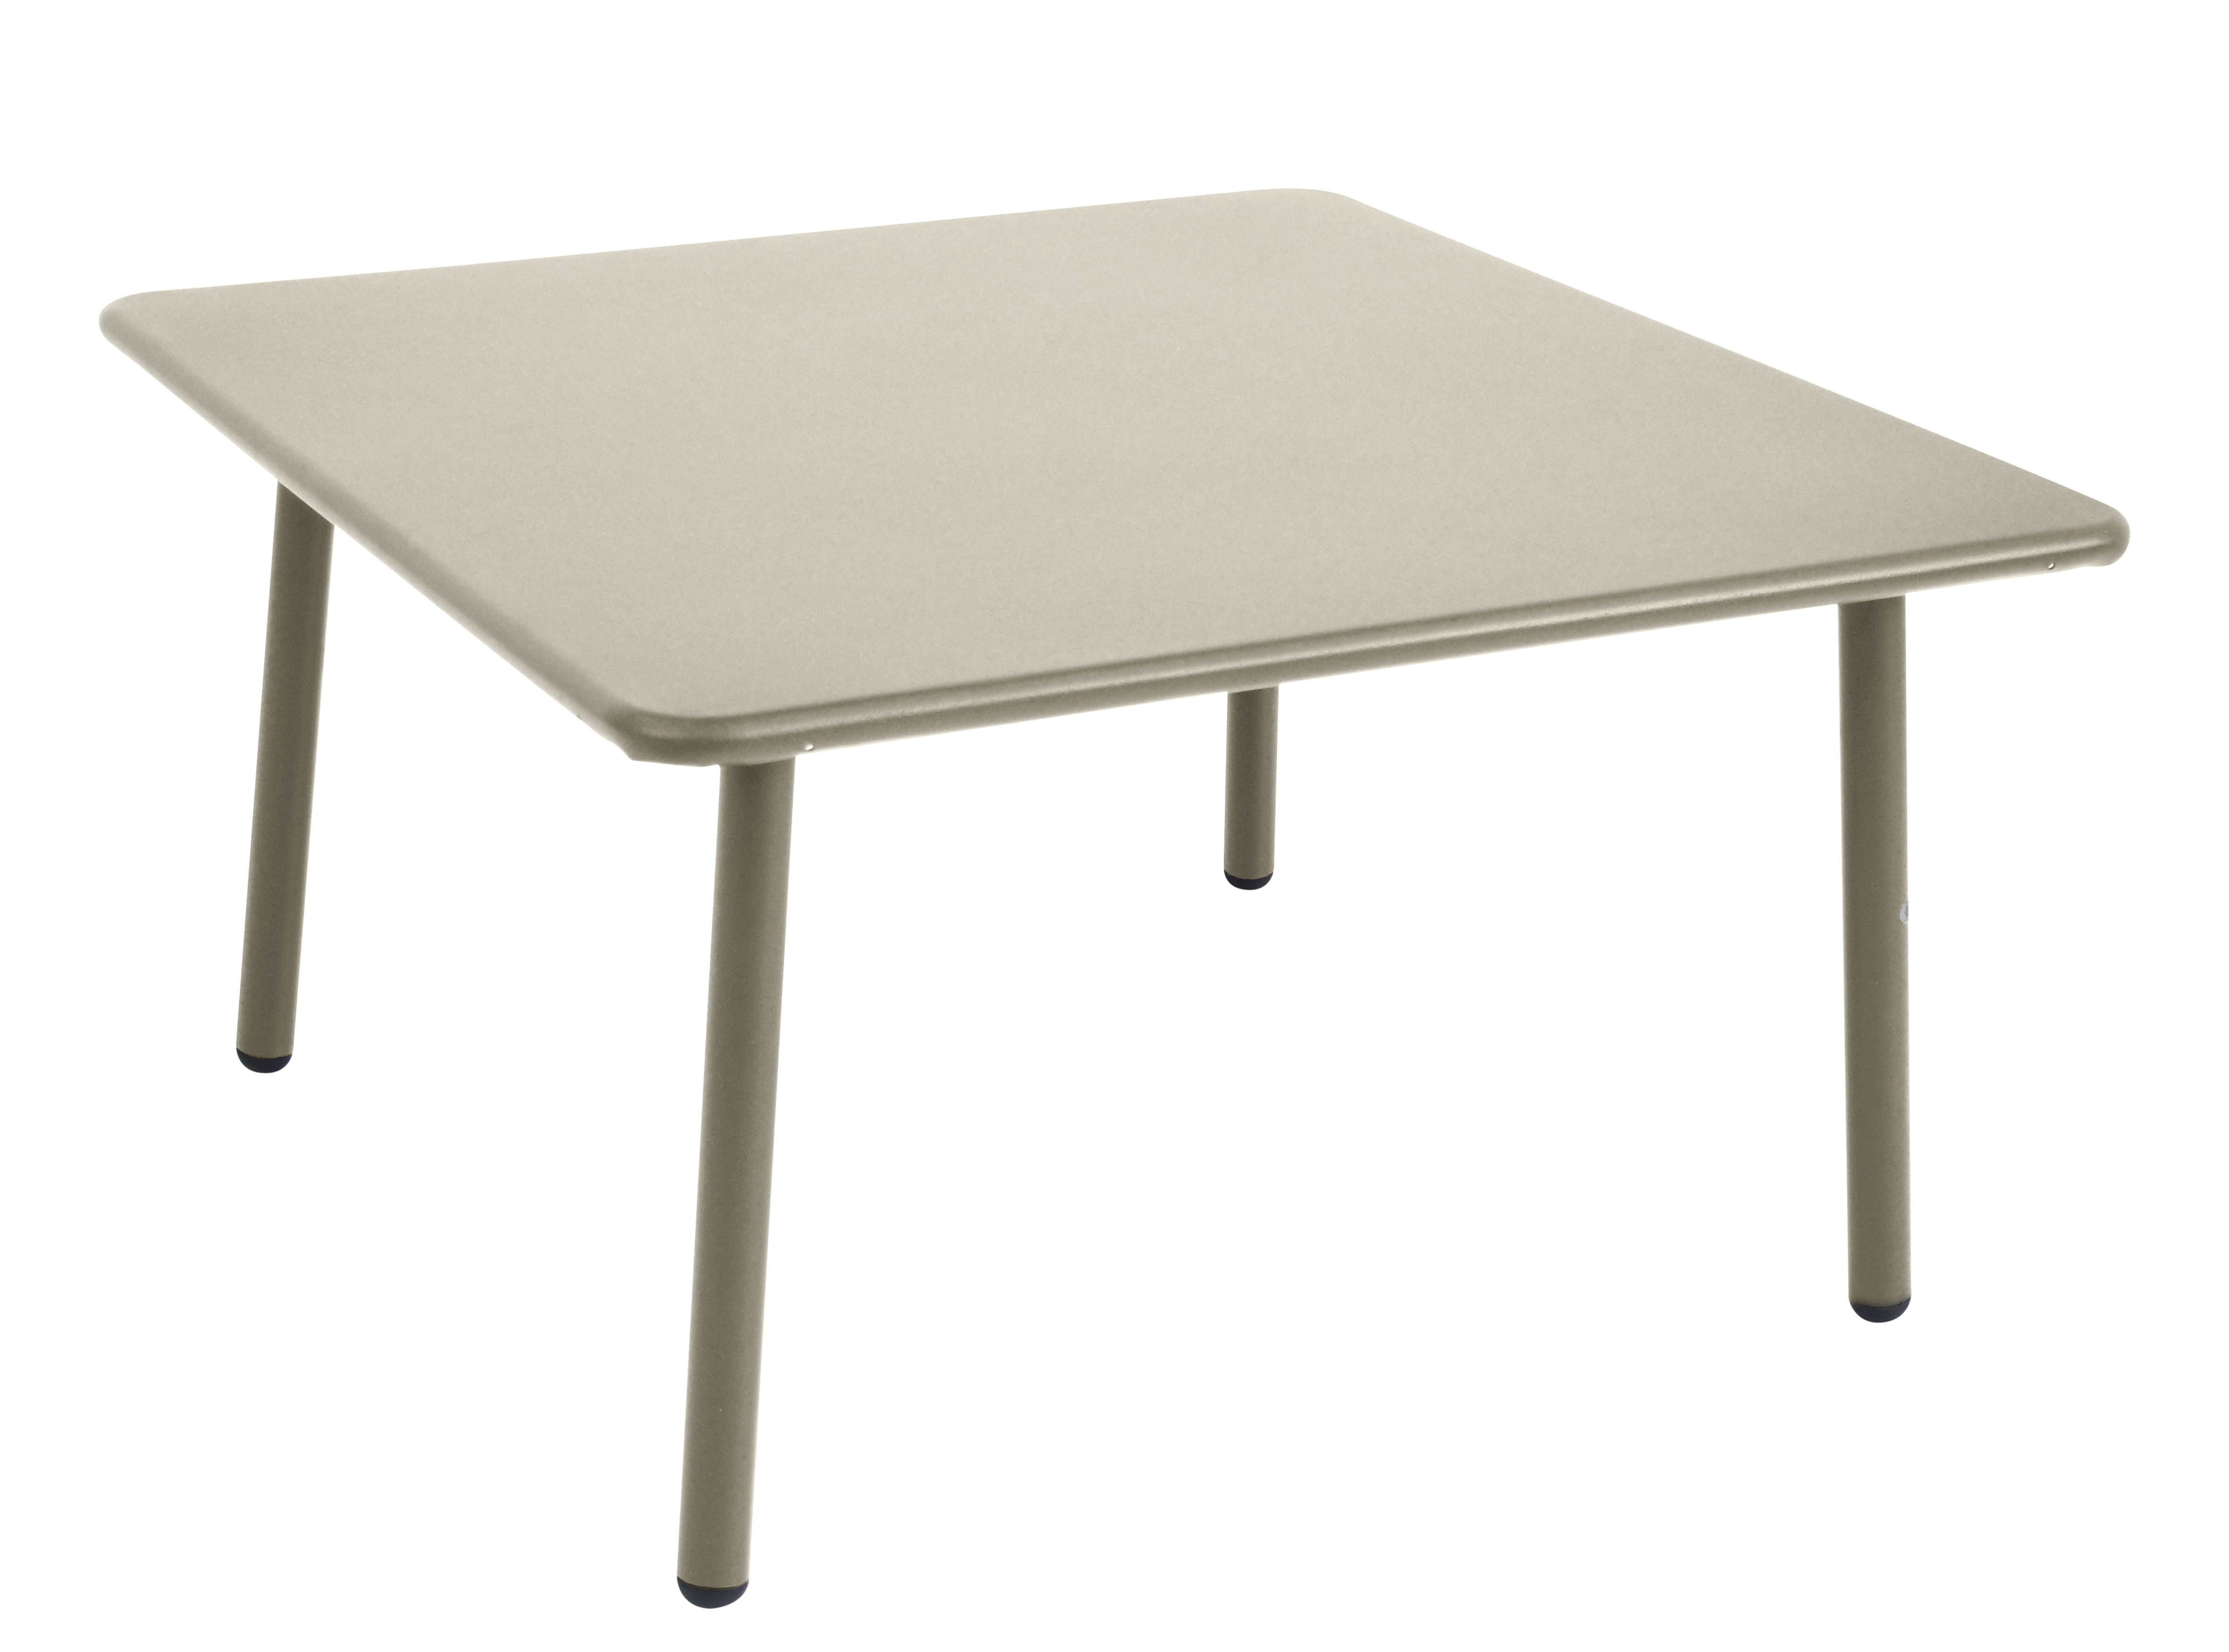 Furniture - Coffee Tables - Darwin Coffee table - 70 x 70 cm by Emu - Grey - Varnished steel